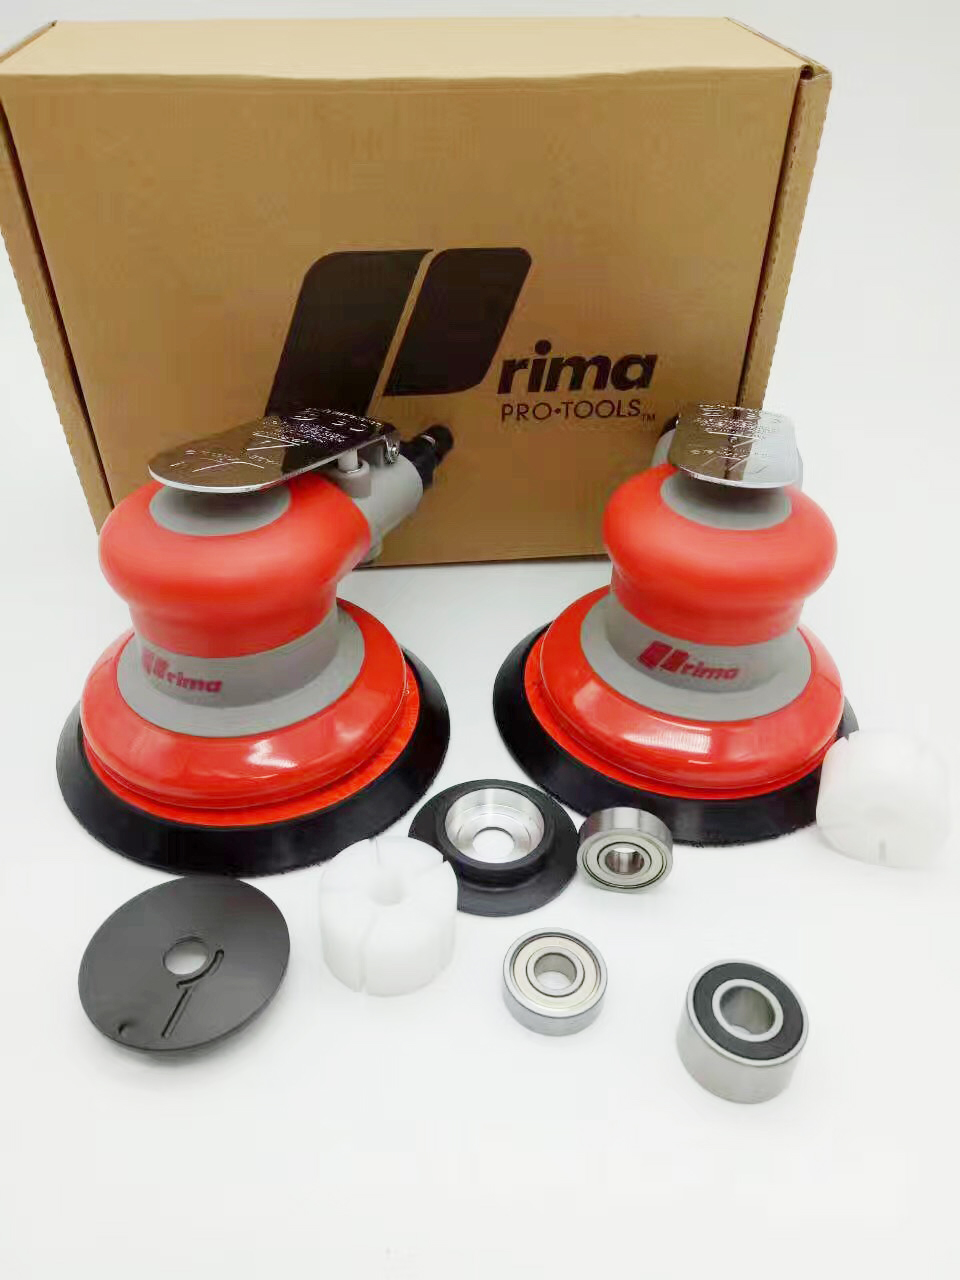 Pneumatic Sanders TAIWAN PRIMA Air Tools Palm Orbital Sander Polisher 5 Inch Circle Round Pad OSN-50VE High Quanlity Industrial 5 inch 125mm pneumatic sanders pneumatic polishing machine air eccentric orbital sanders cars polishers air car tools